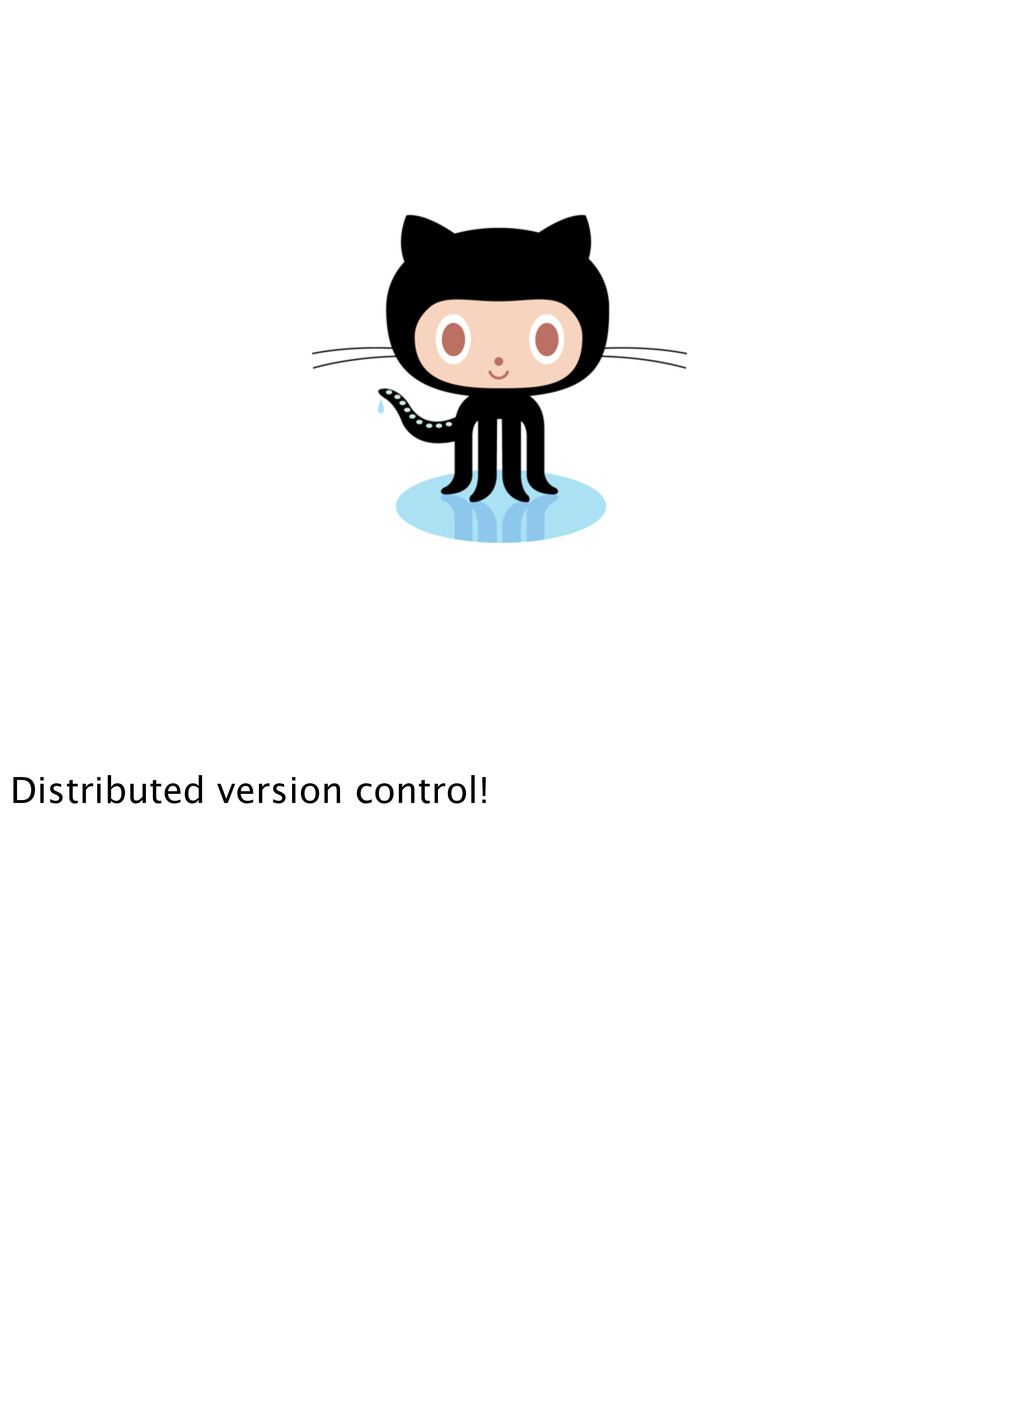 Distributed version control!